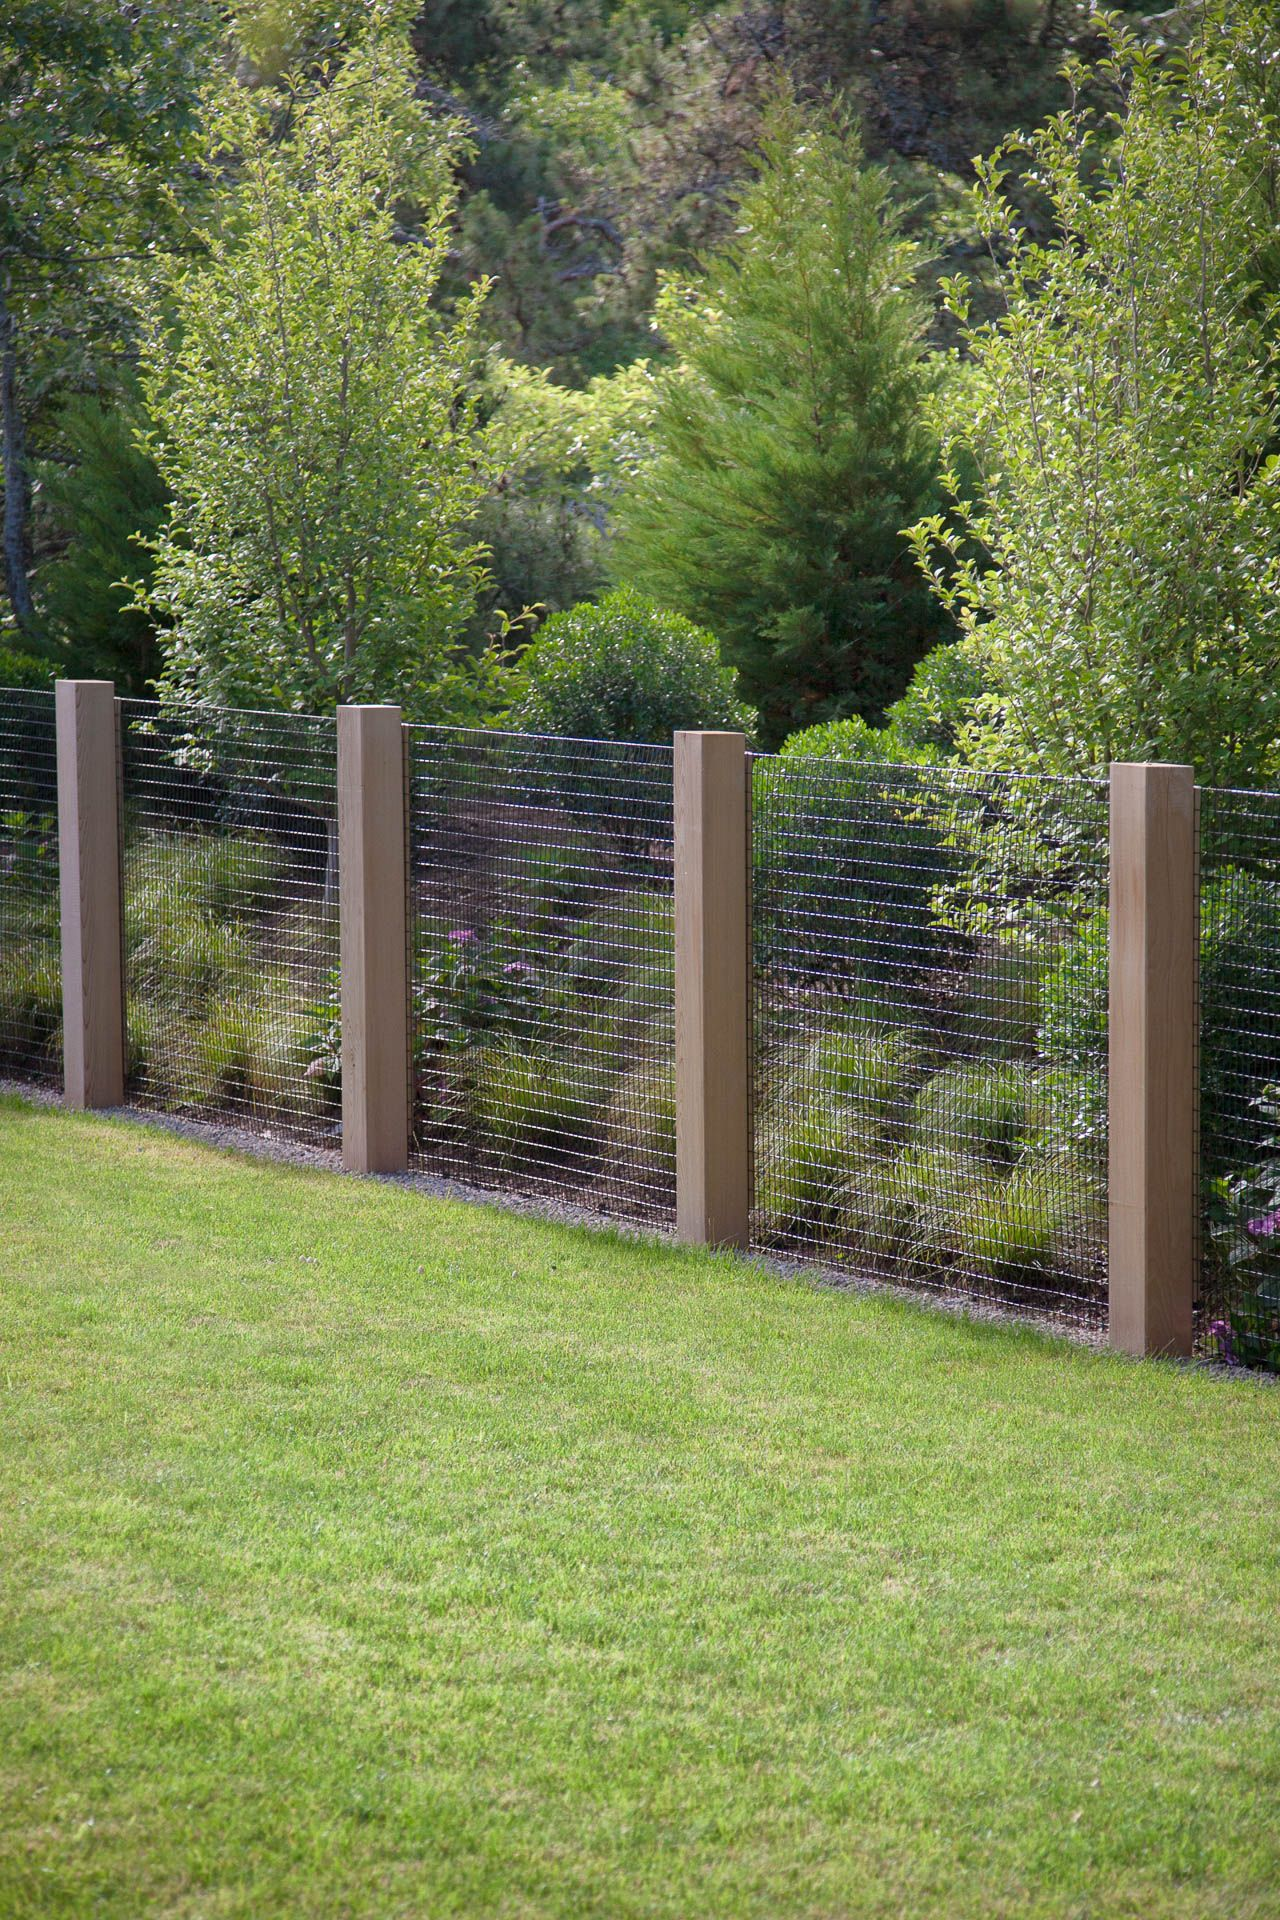 dune garden matthew cunningham landscape design llc on inexpensive way to build a wood privacy fence diy guide for 2020 id=82474